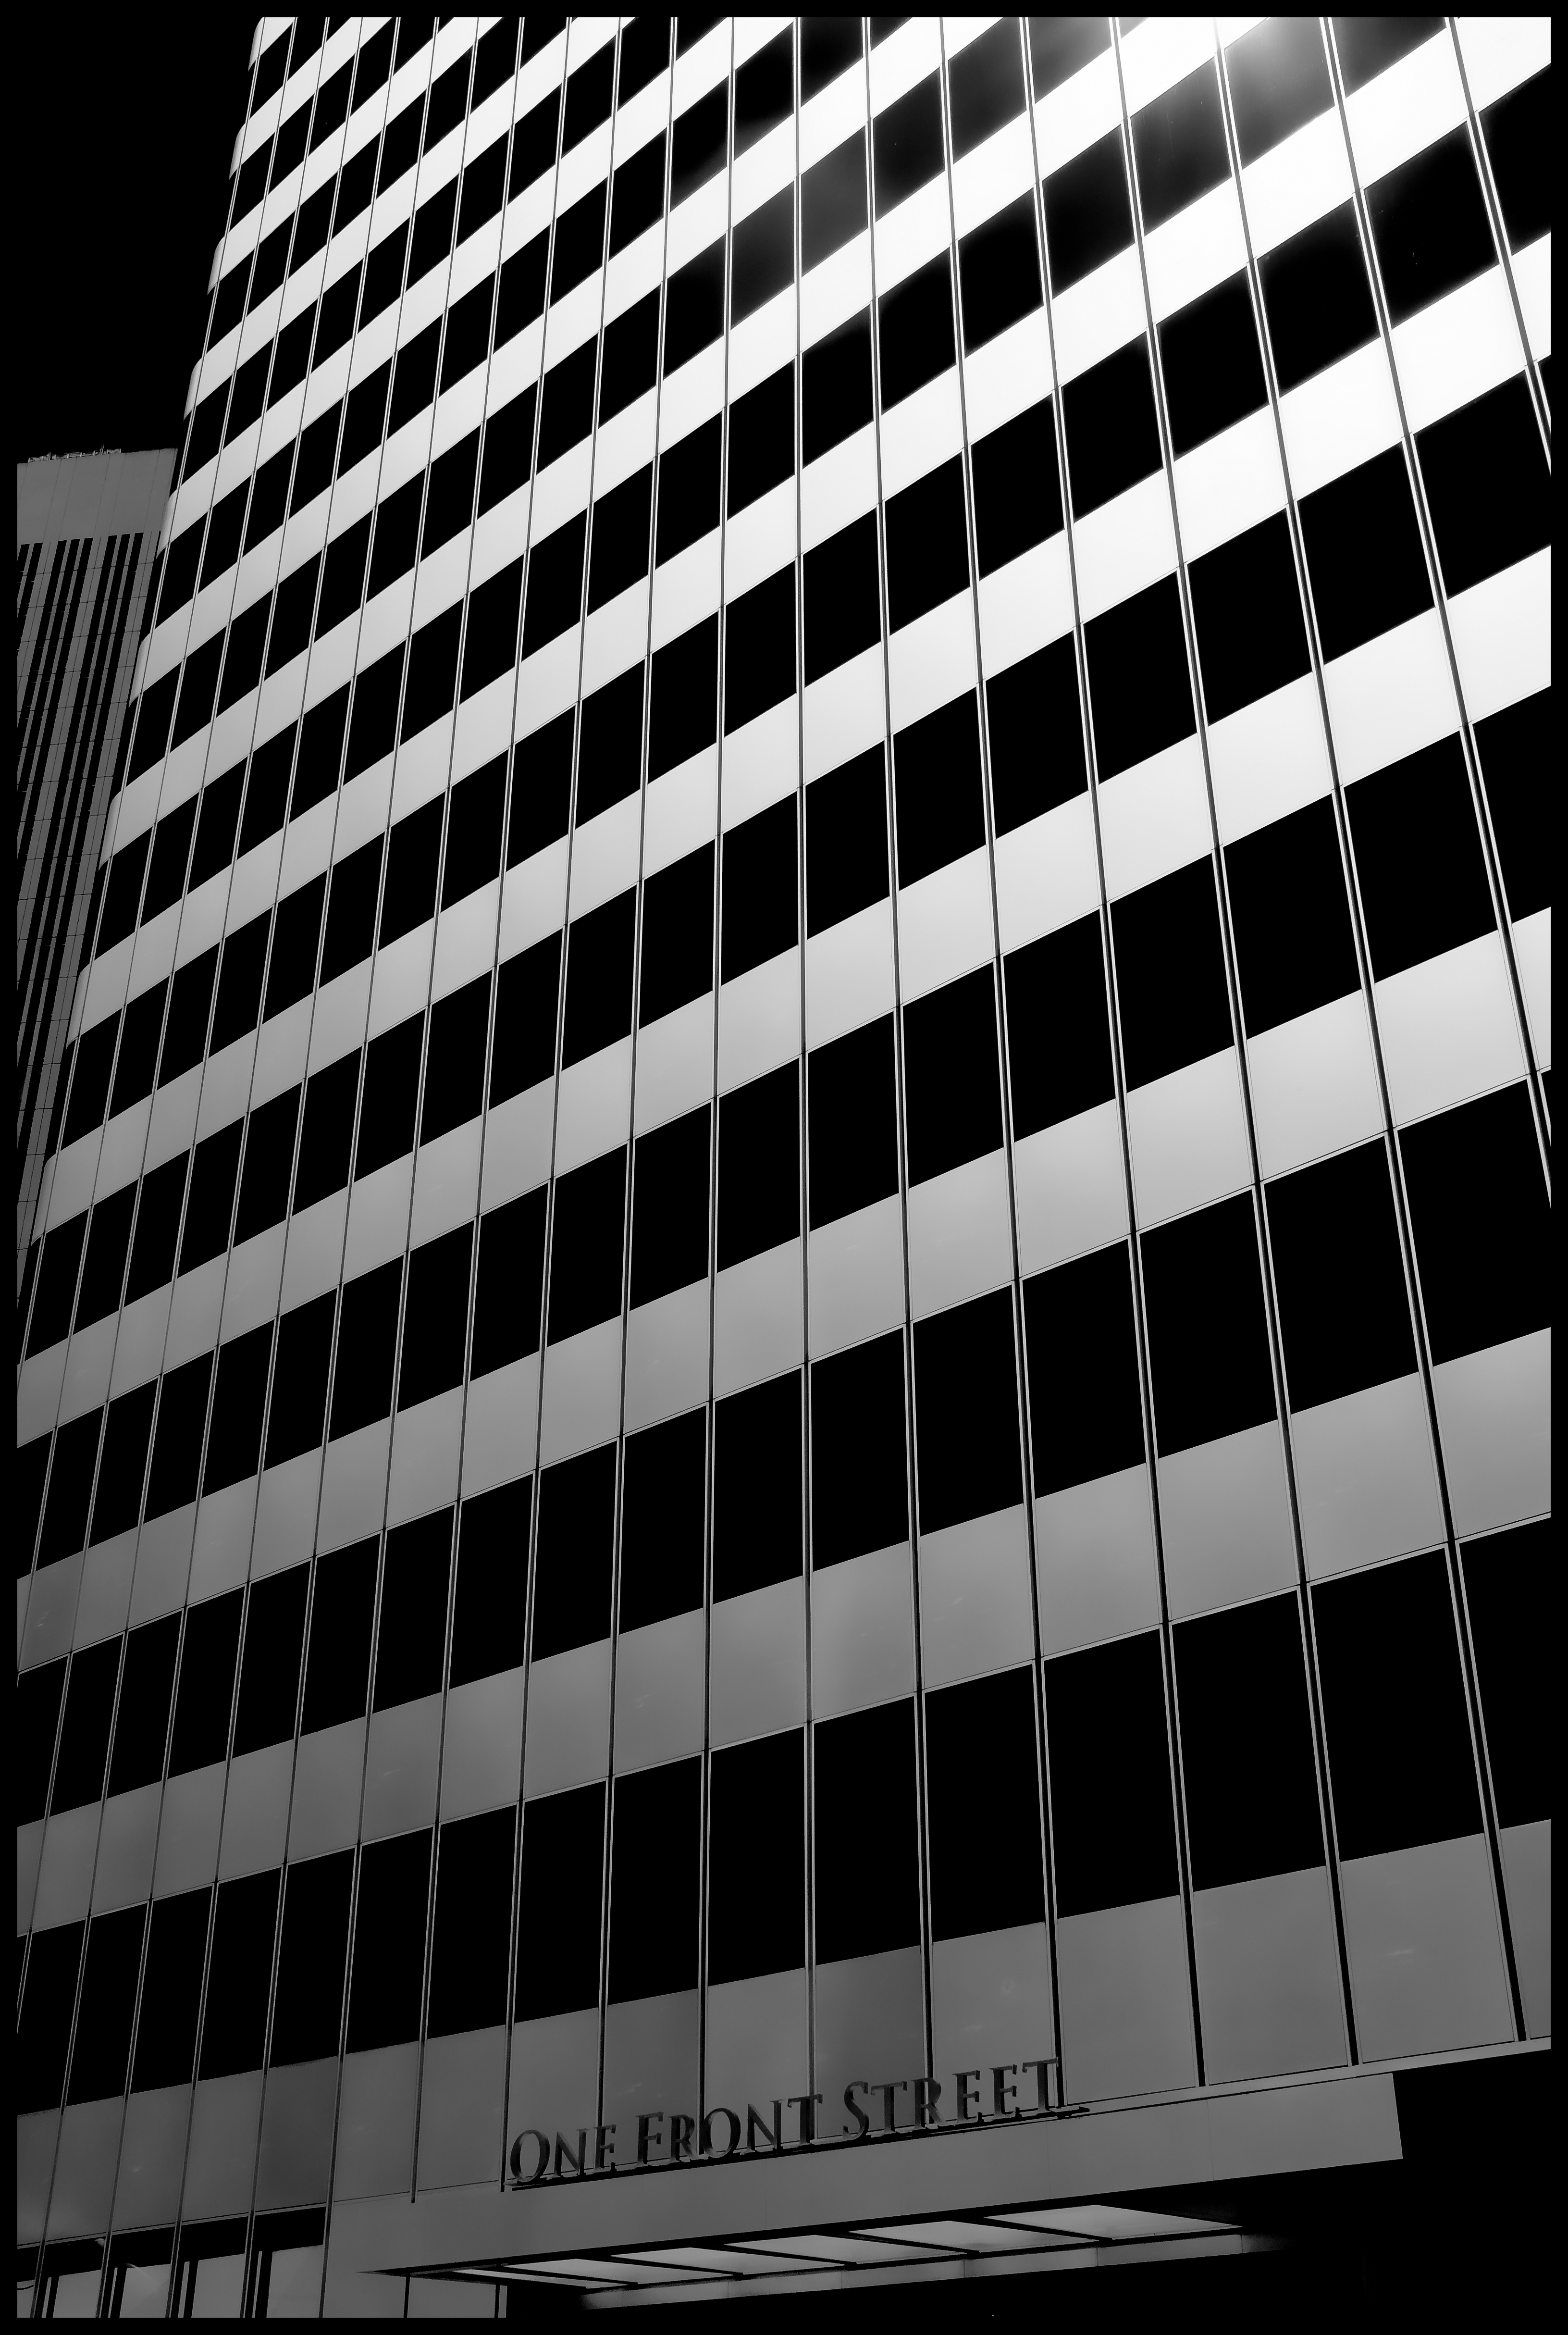 One Front Street - San Francisco - 2014